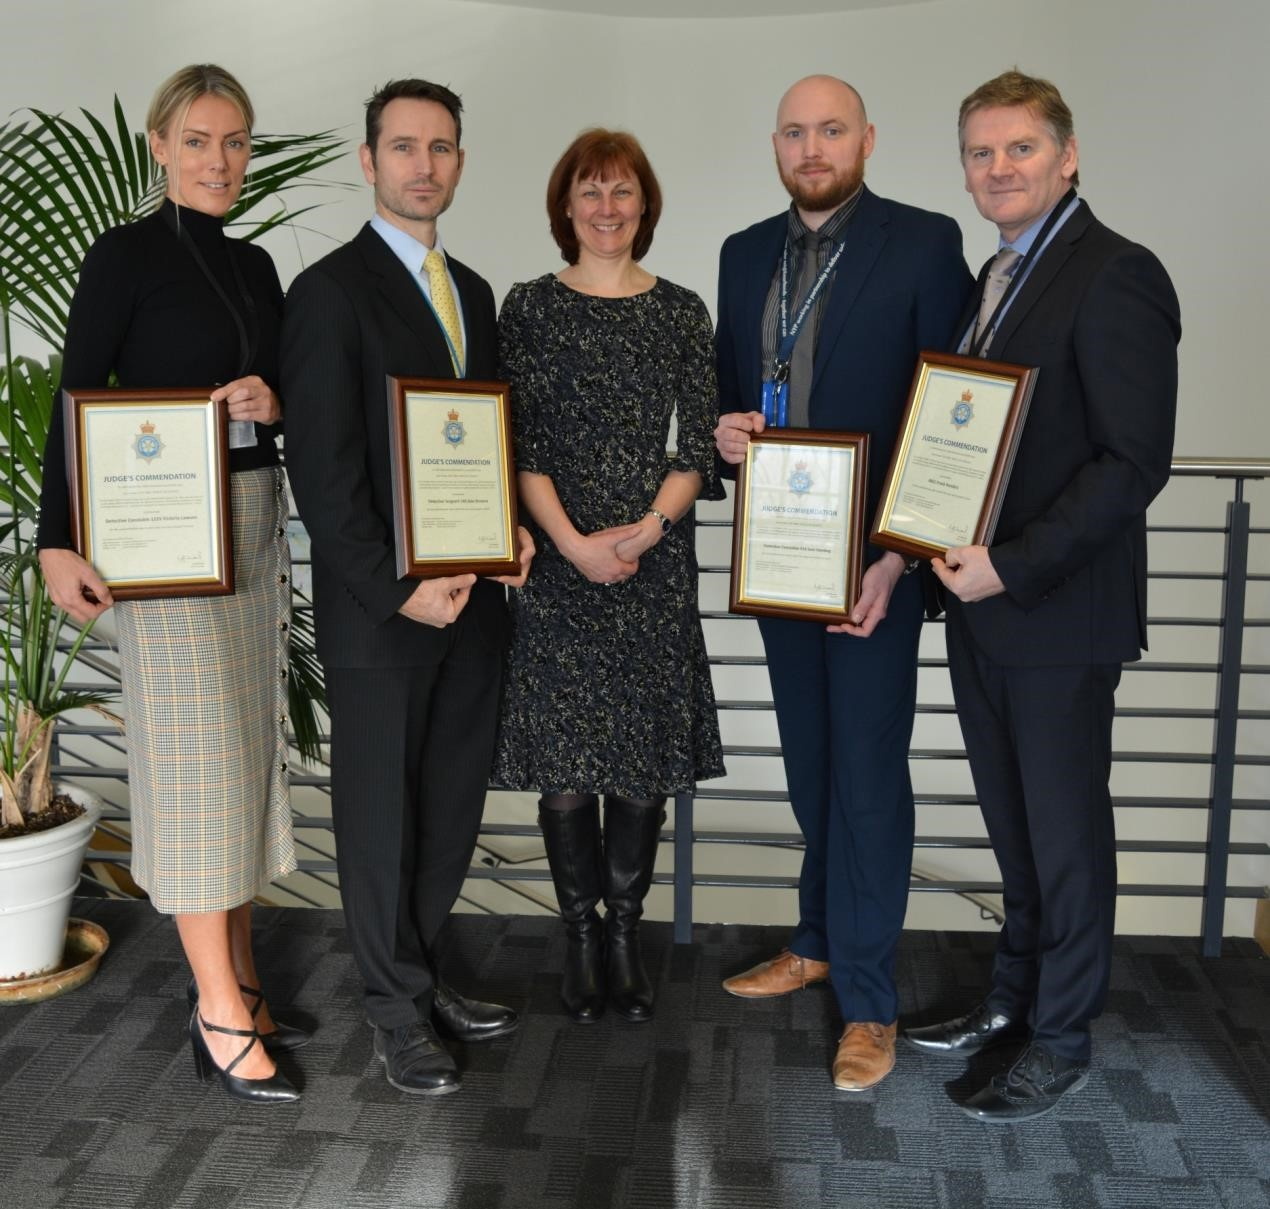 From left, Detective Constable Victoria Lawson, Detective Sergeant Alan Browne, Chief Constable Lisa Winward, Detective Constable Sam Harding and Police Staff Investigator Frank Penders